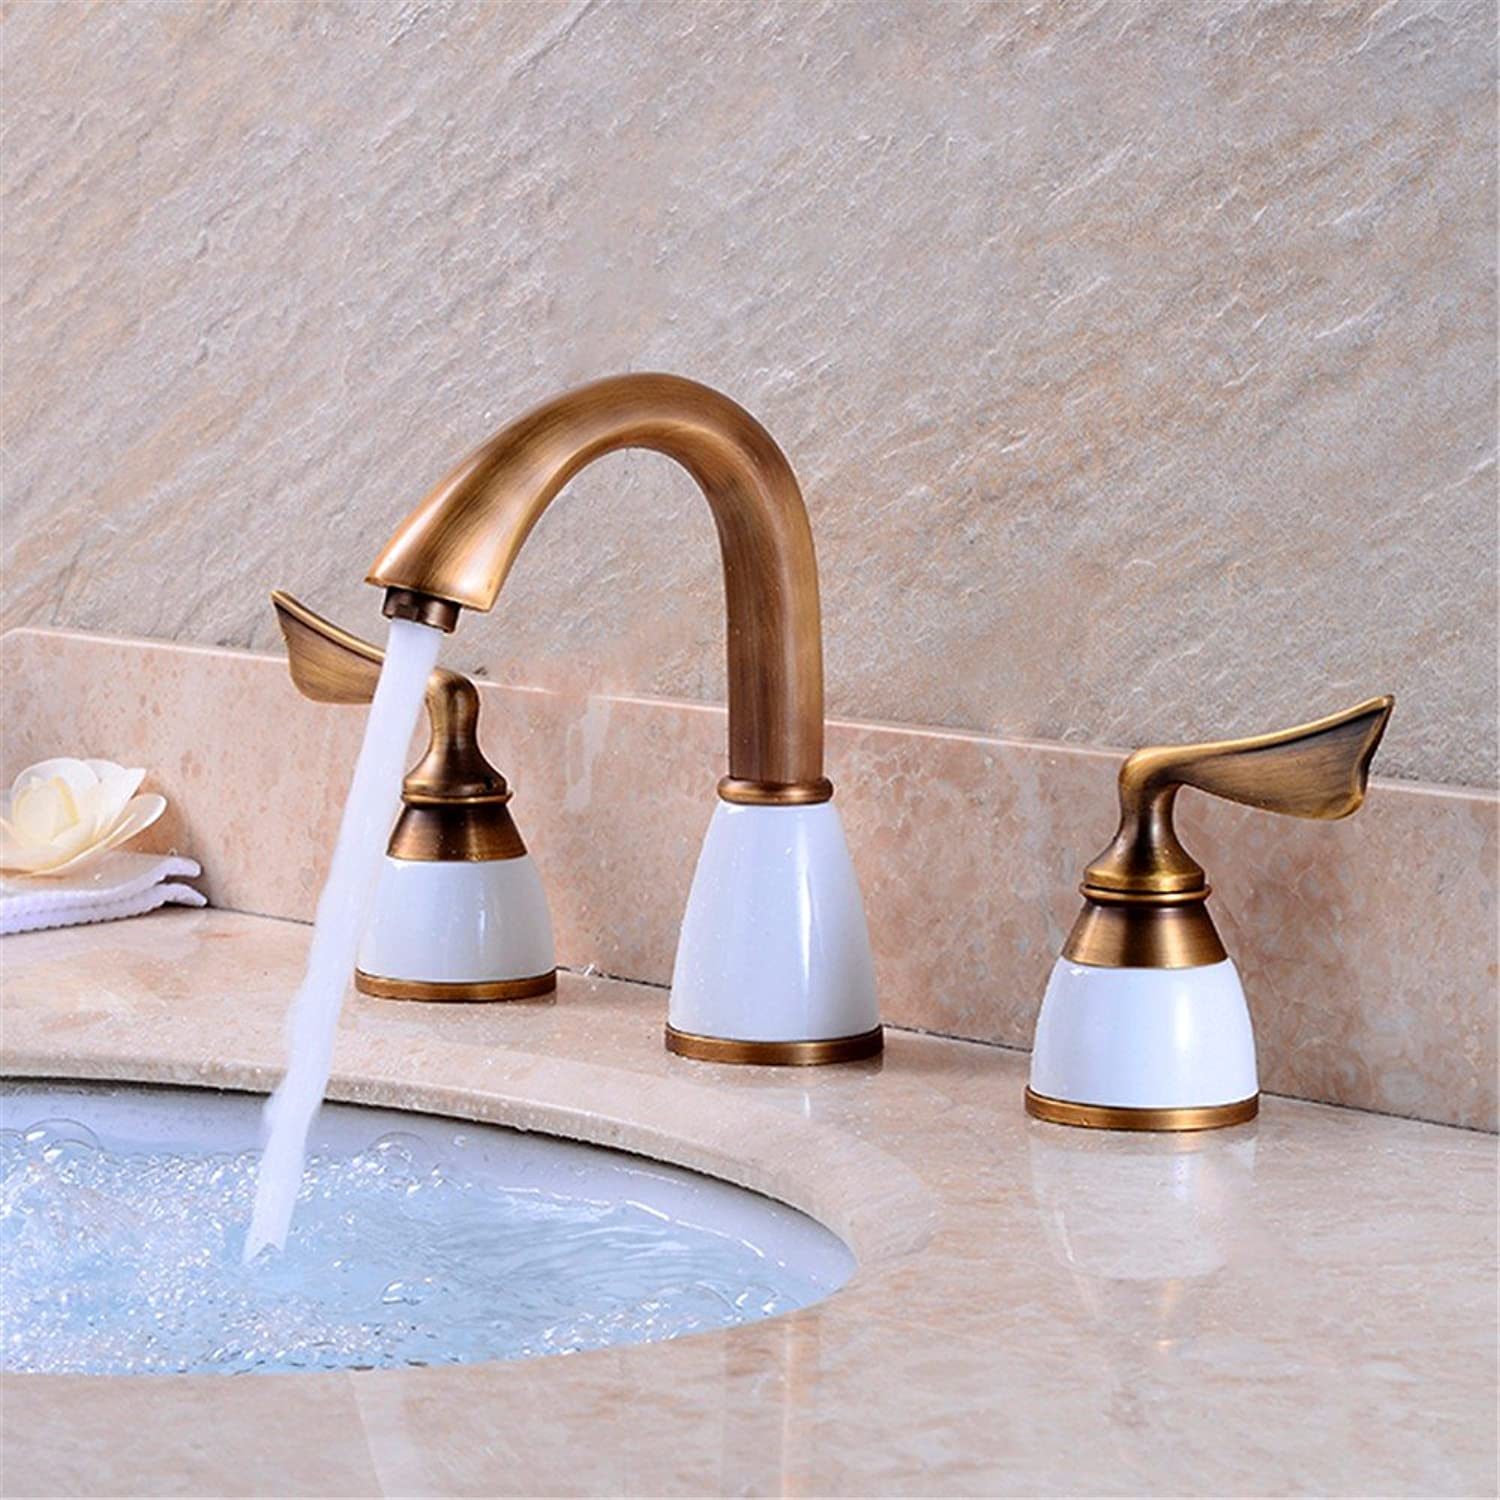 Hlluya Professional Sink Mixer Tap Kitchen Faucet Antique-brass three hole basin mixer hot and cold basin tap split sinks wash basins toilets